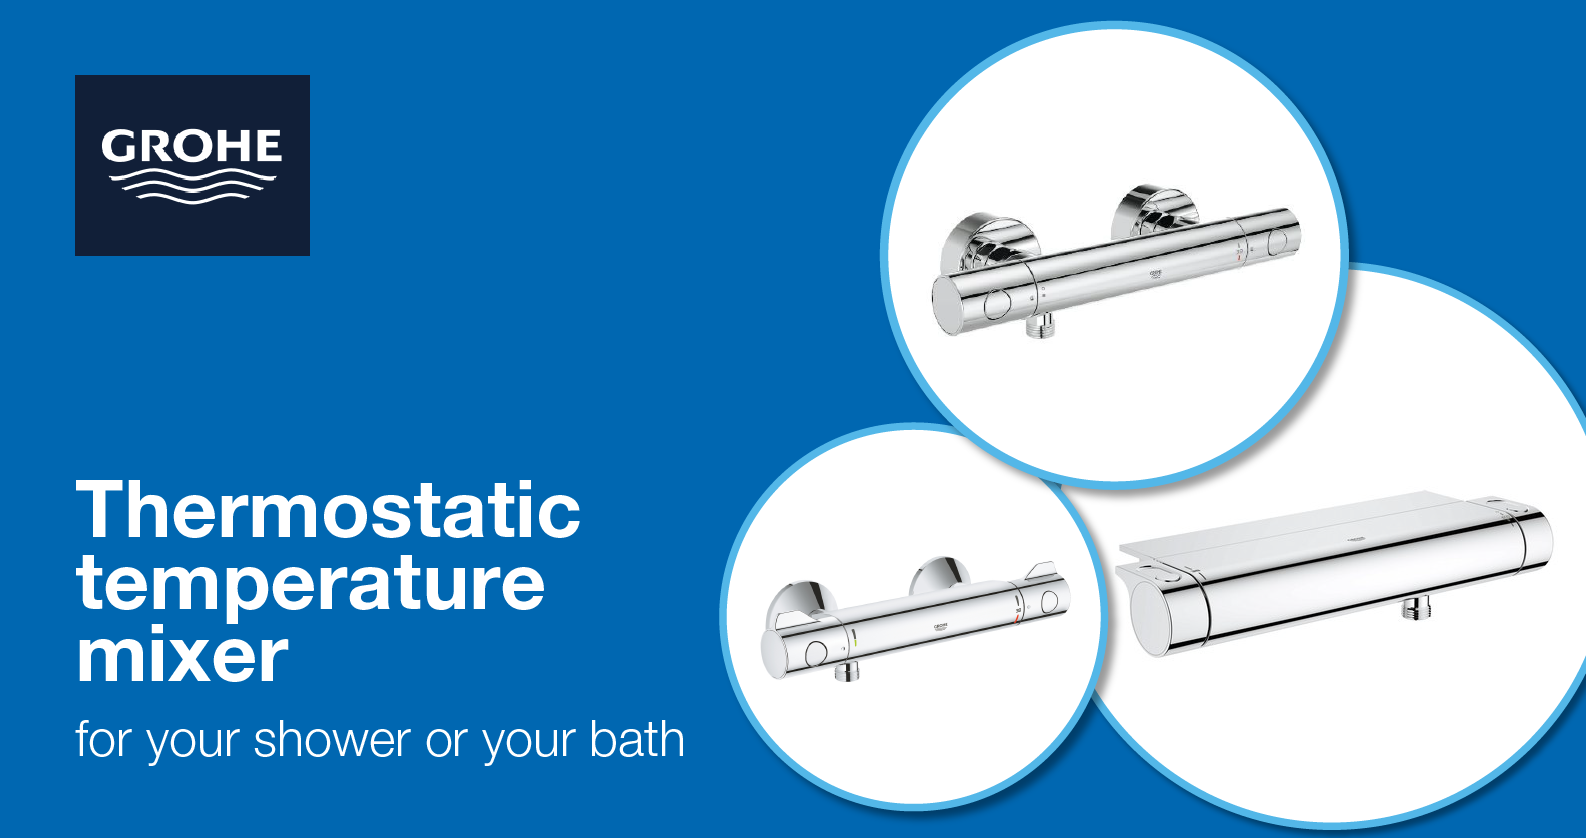 GROHE thermostatic mixers for shower and bathtub at xTWOstore